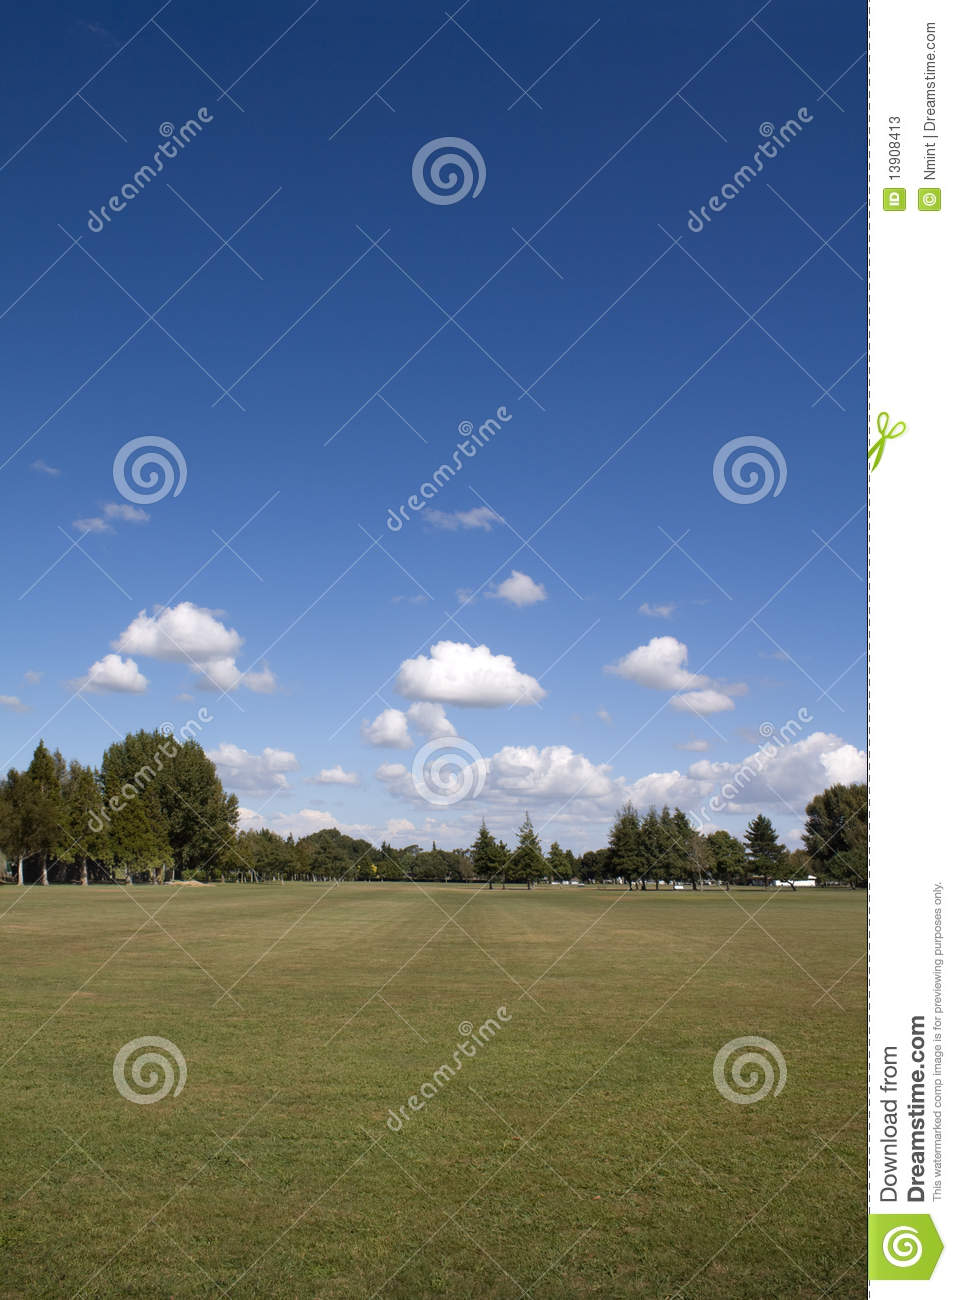 Green Grass, Trees And Blue Sky Stock Photos - Image: 13908413